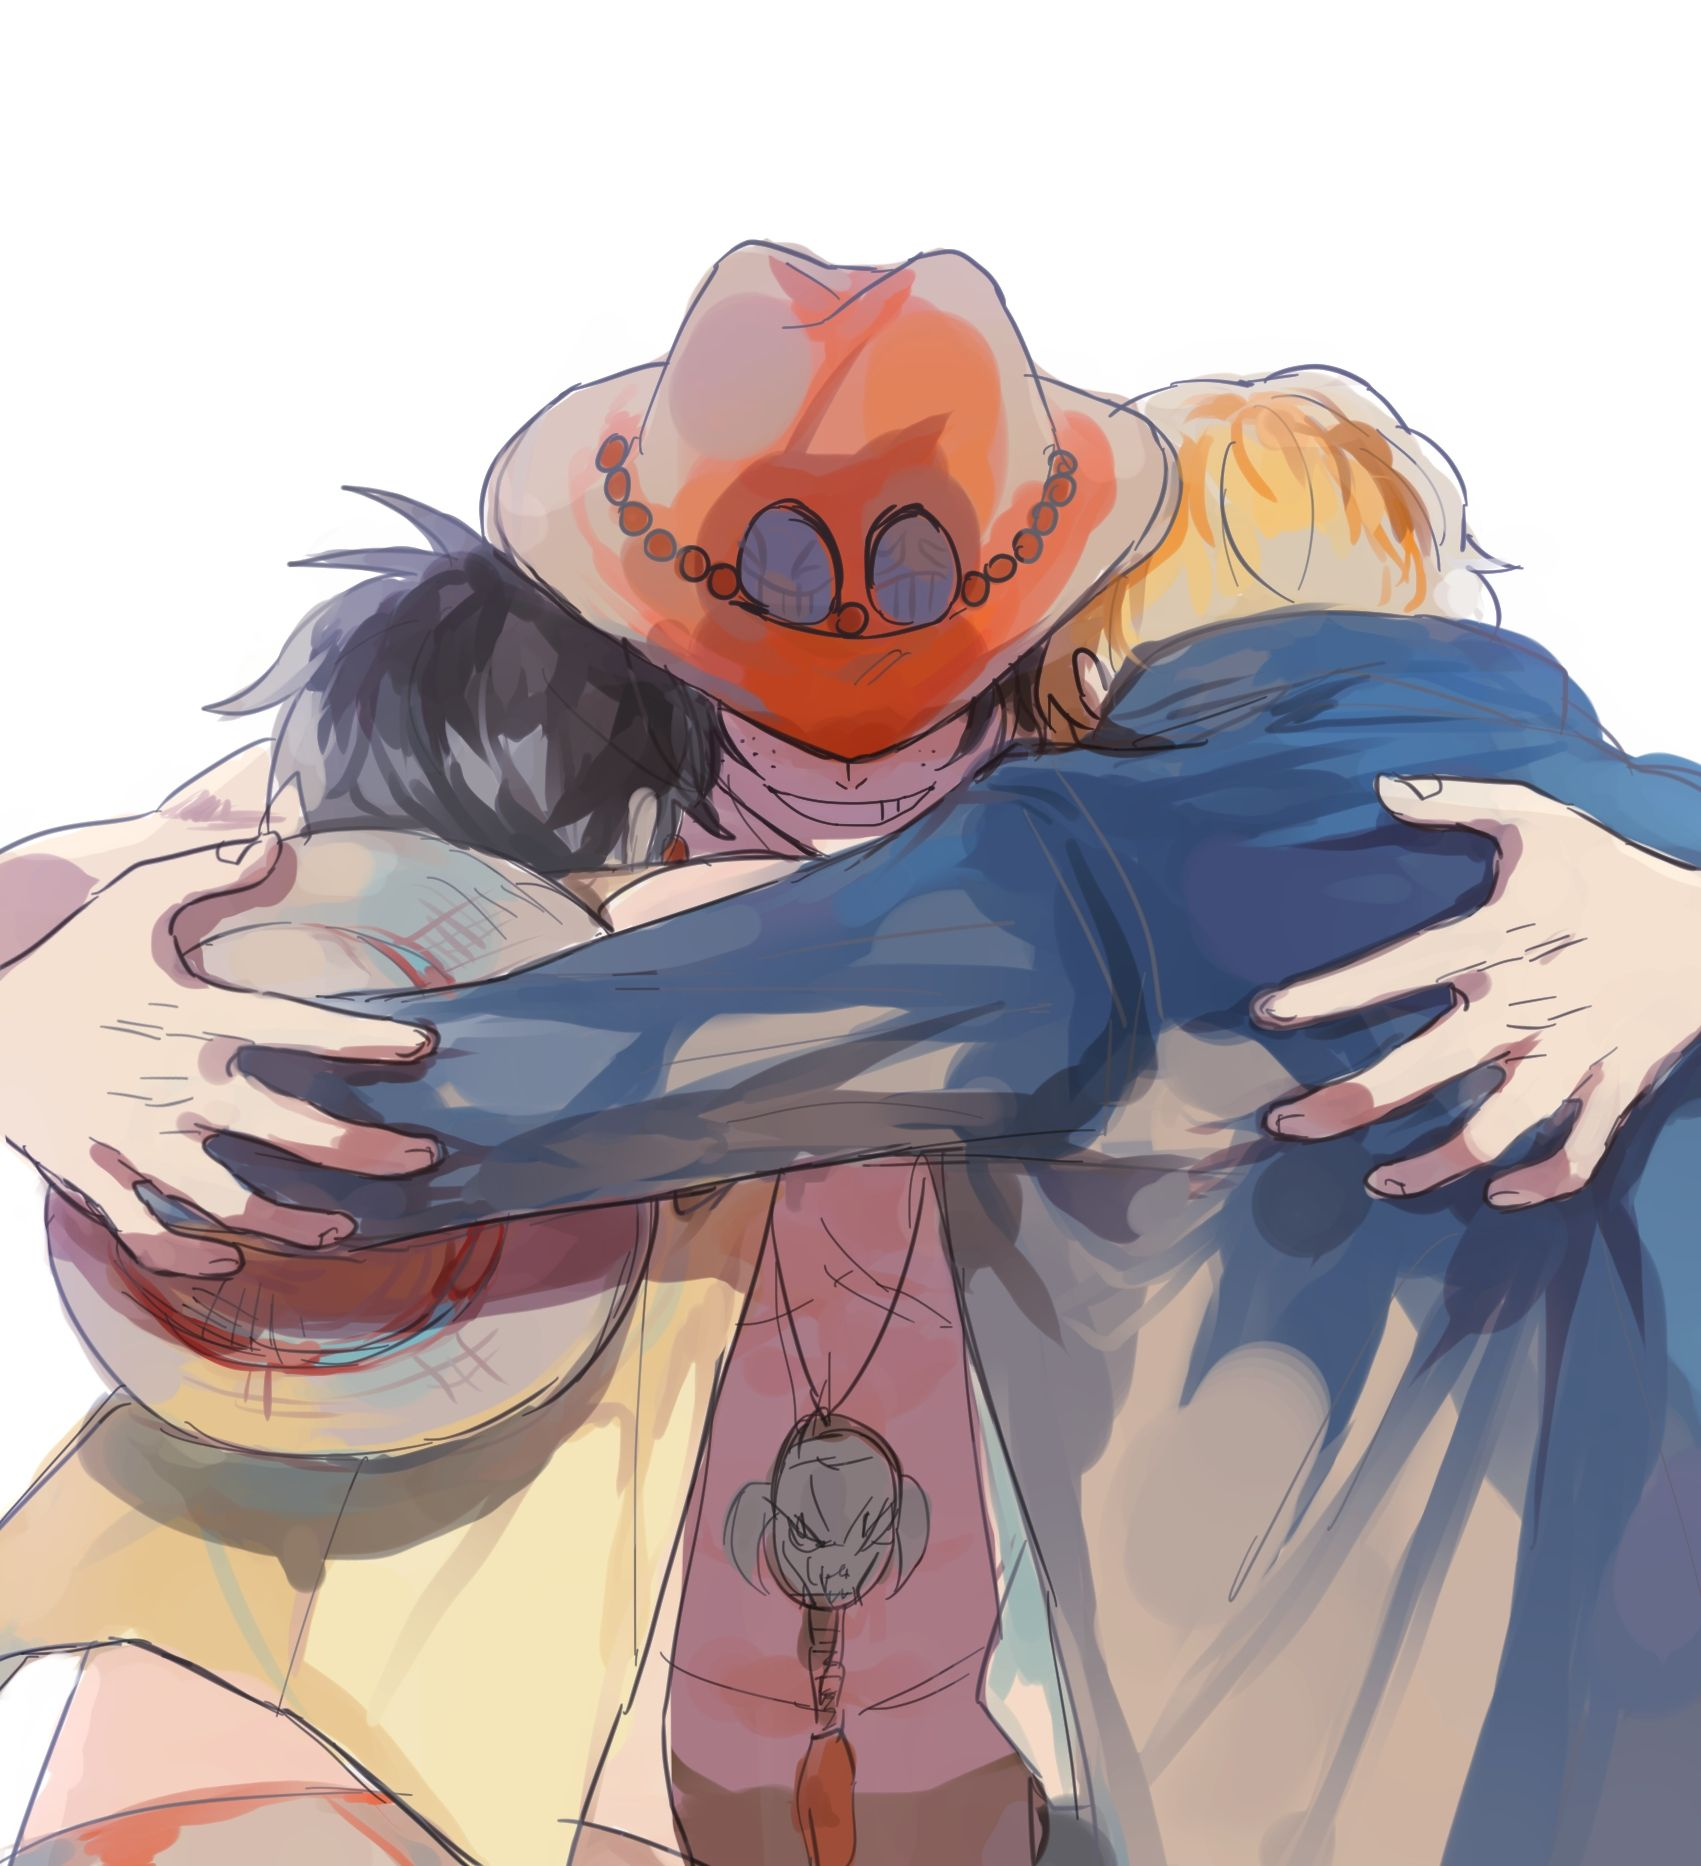 Tags: Fanart, ONE PIECE, Monkey D. Luffy, Portgas D. Ace